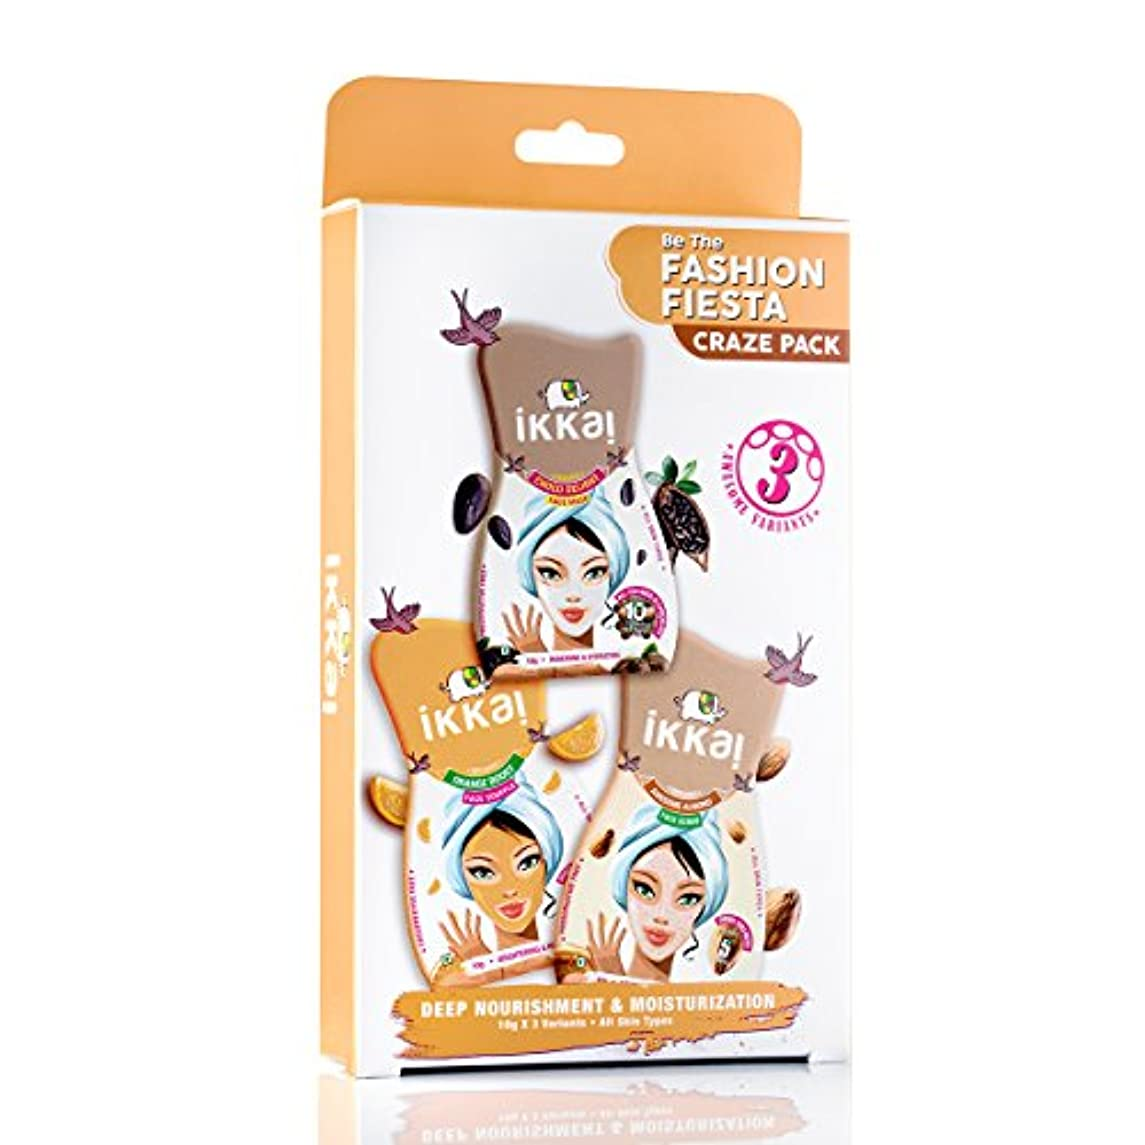 Ikkai by Lotus Herbals Fashion Fiesta Craze Pack (1 Face Mask, 1 Face Scrub and 1 Face Souffle)